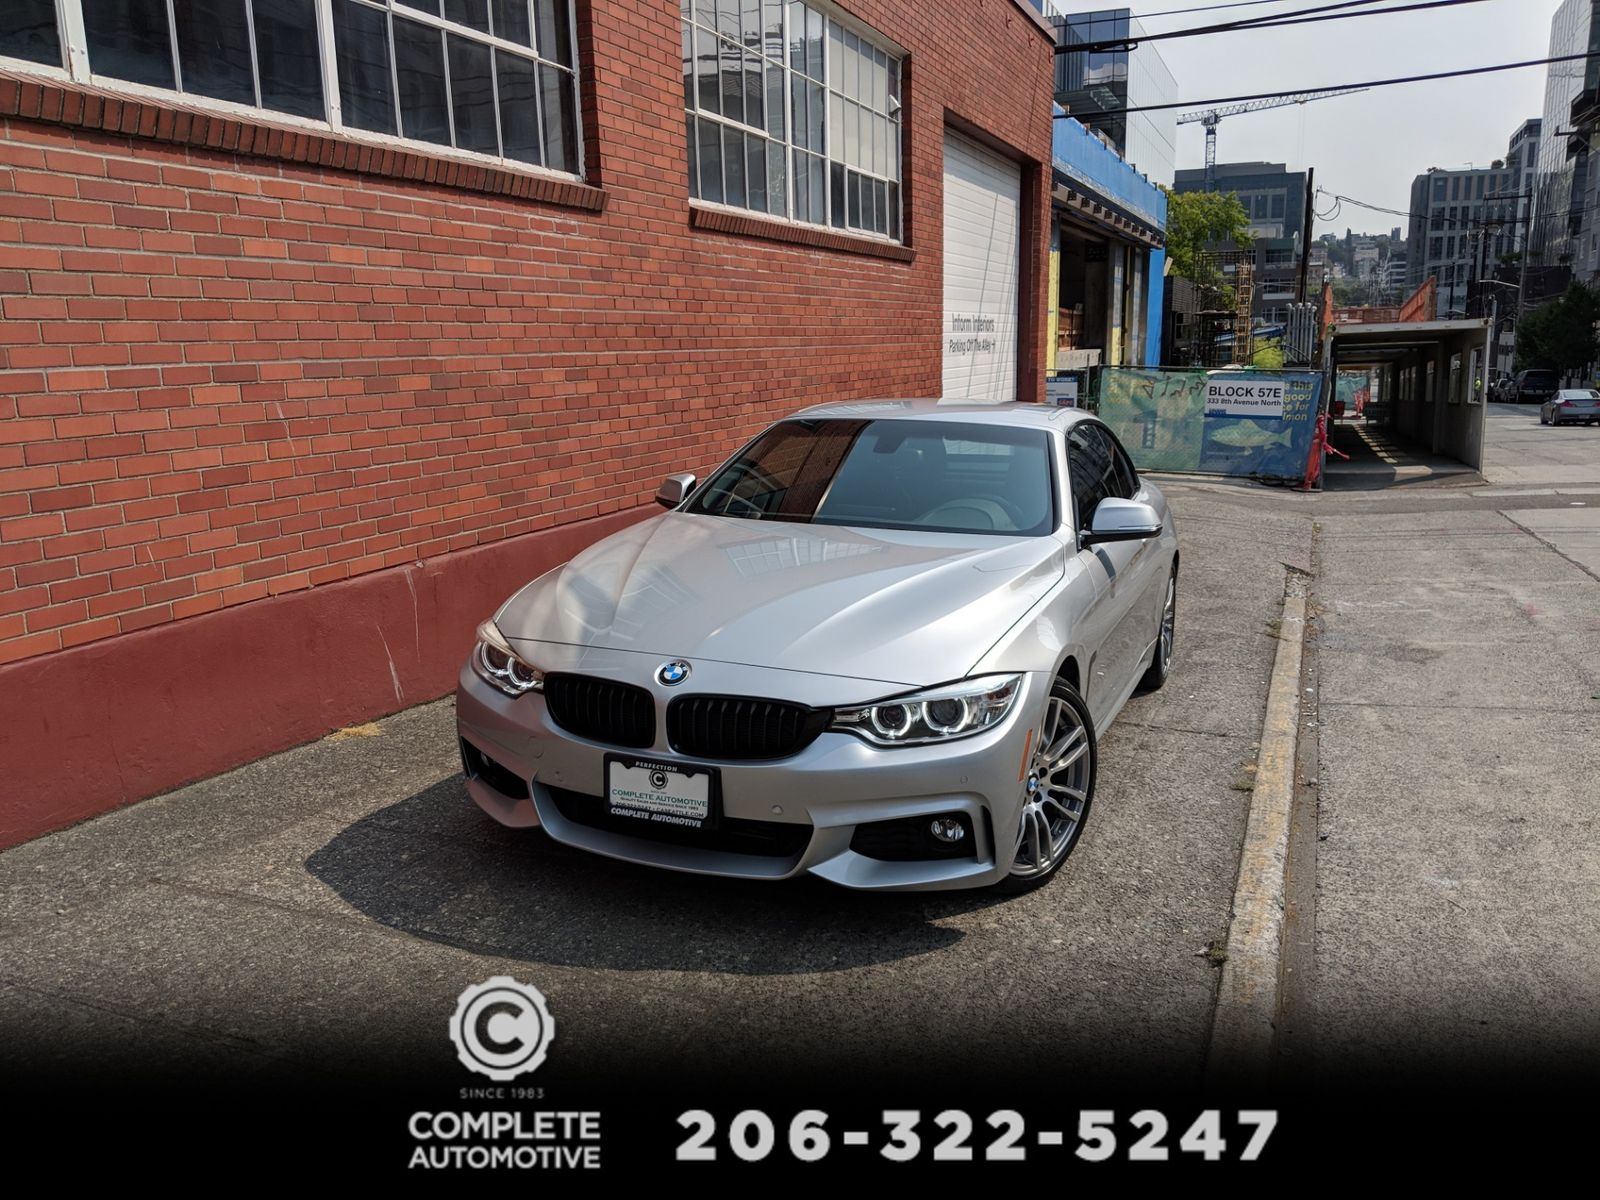 2015 BMW 428i Convertible M Sport Driving Assist Premium Packages Navi Rear Camera Heated Seats Xenons